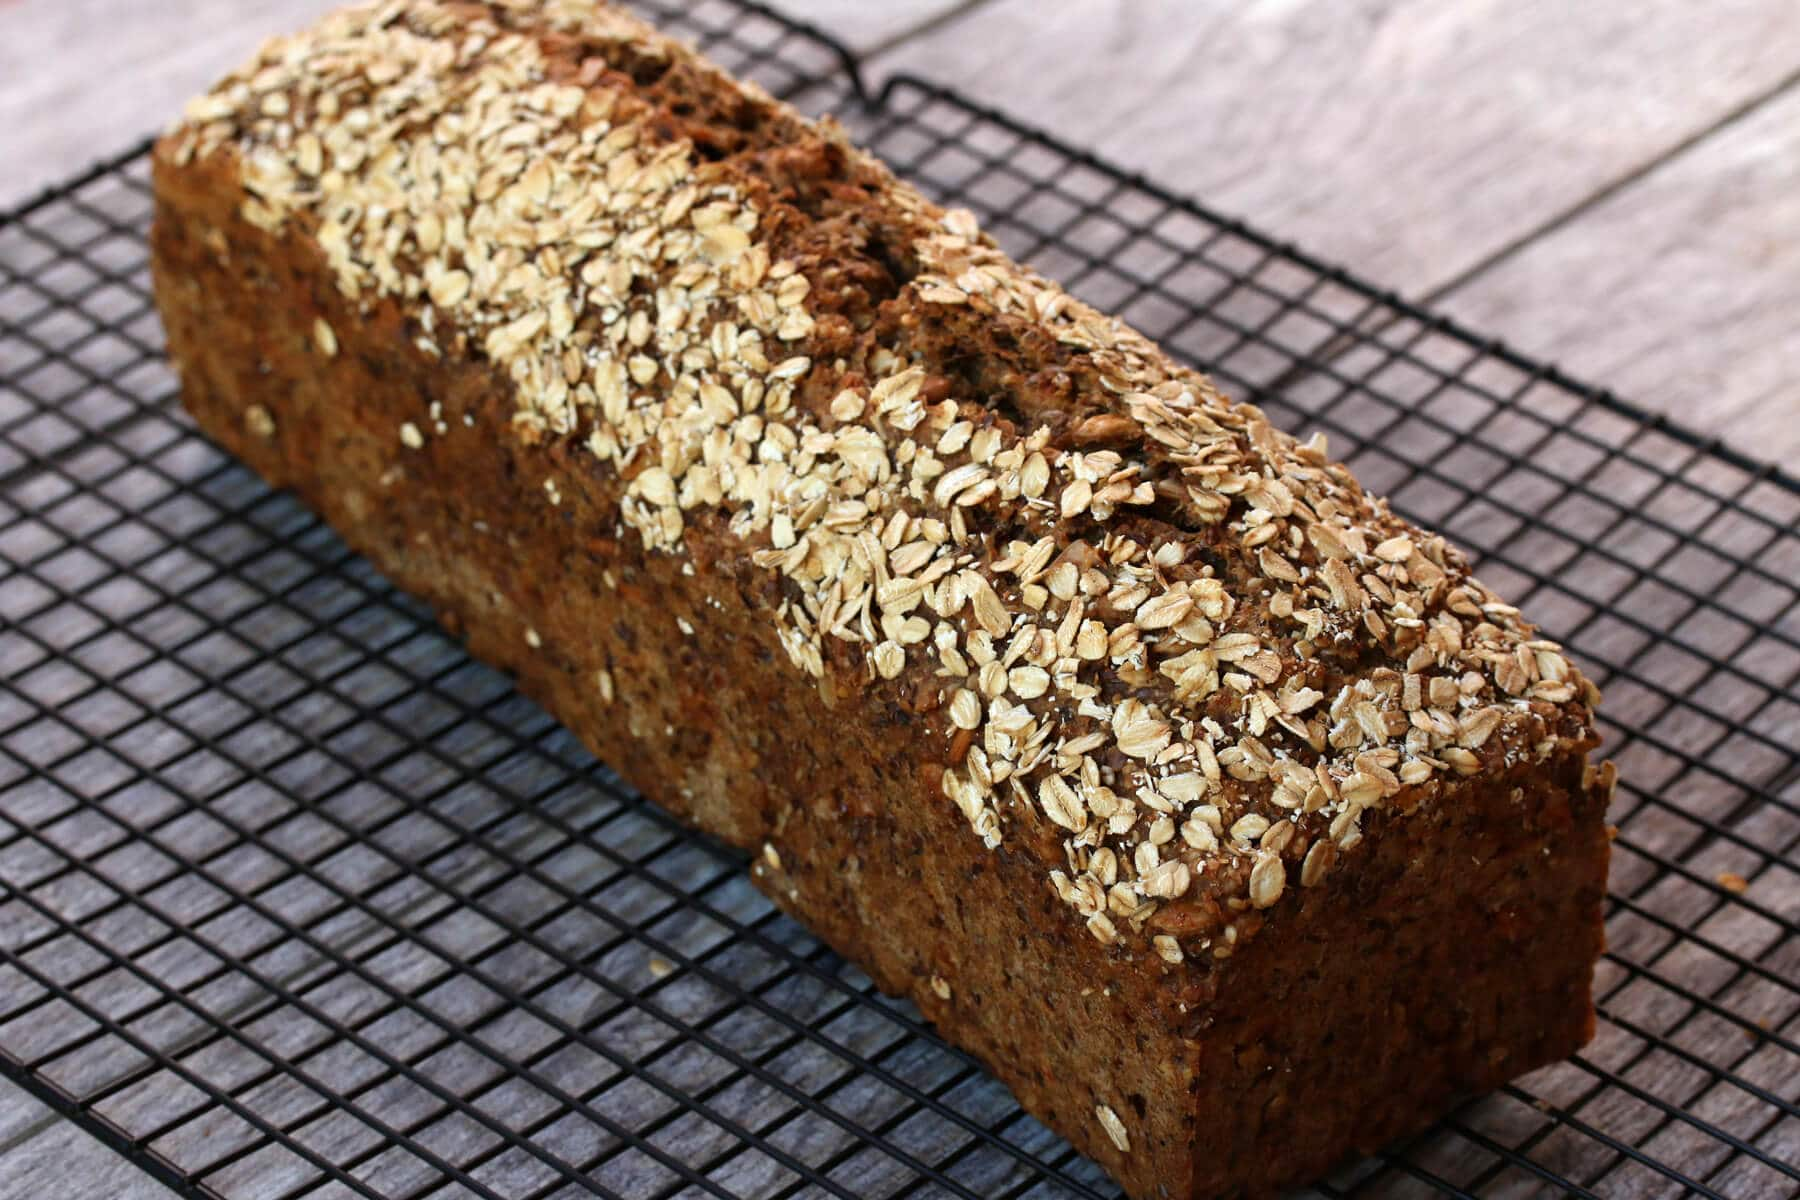 german brown bread recipe farmer authentic traditional vollkornbrot einkornbrot einkorn whole wheat grain sourdough beer nuts seeds